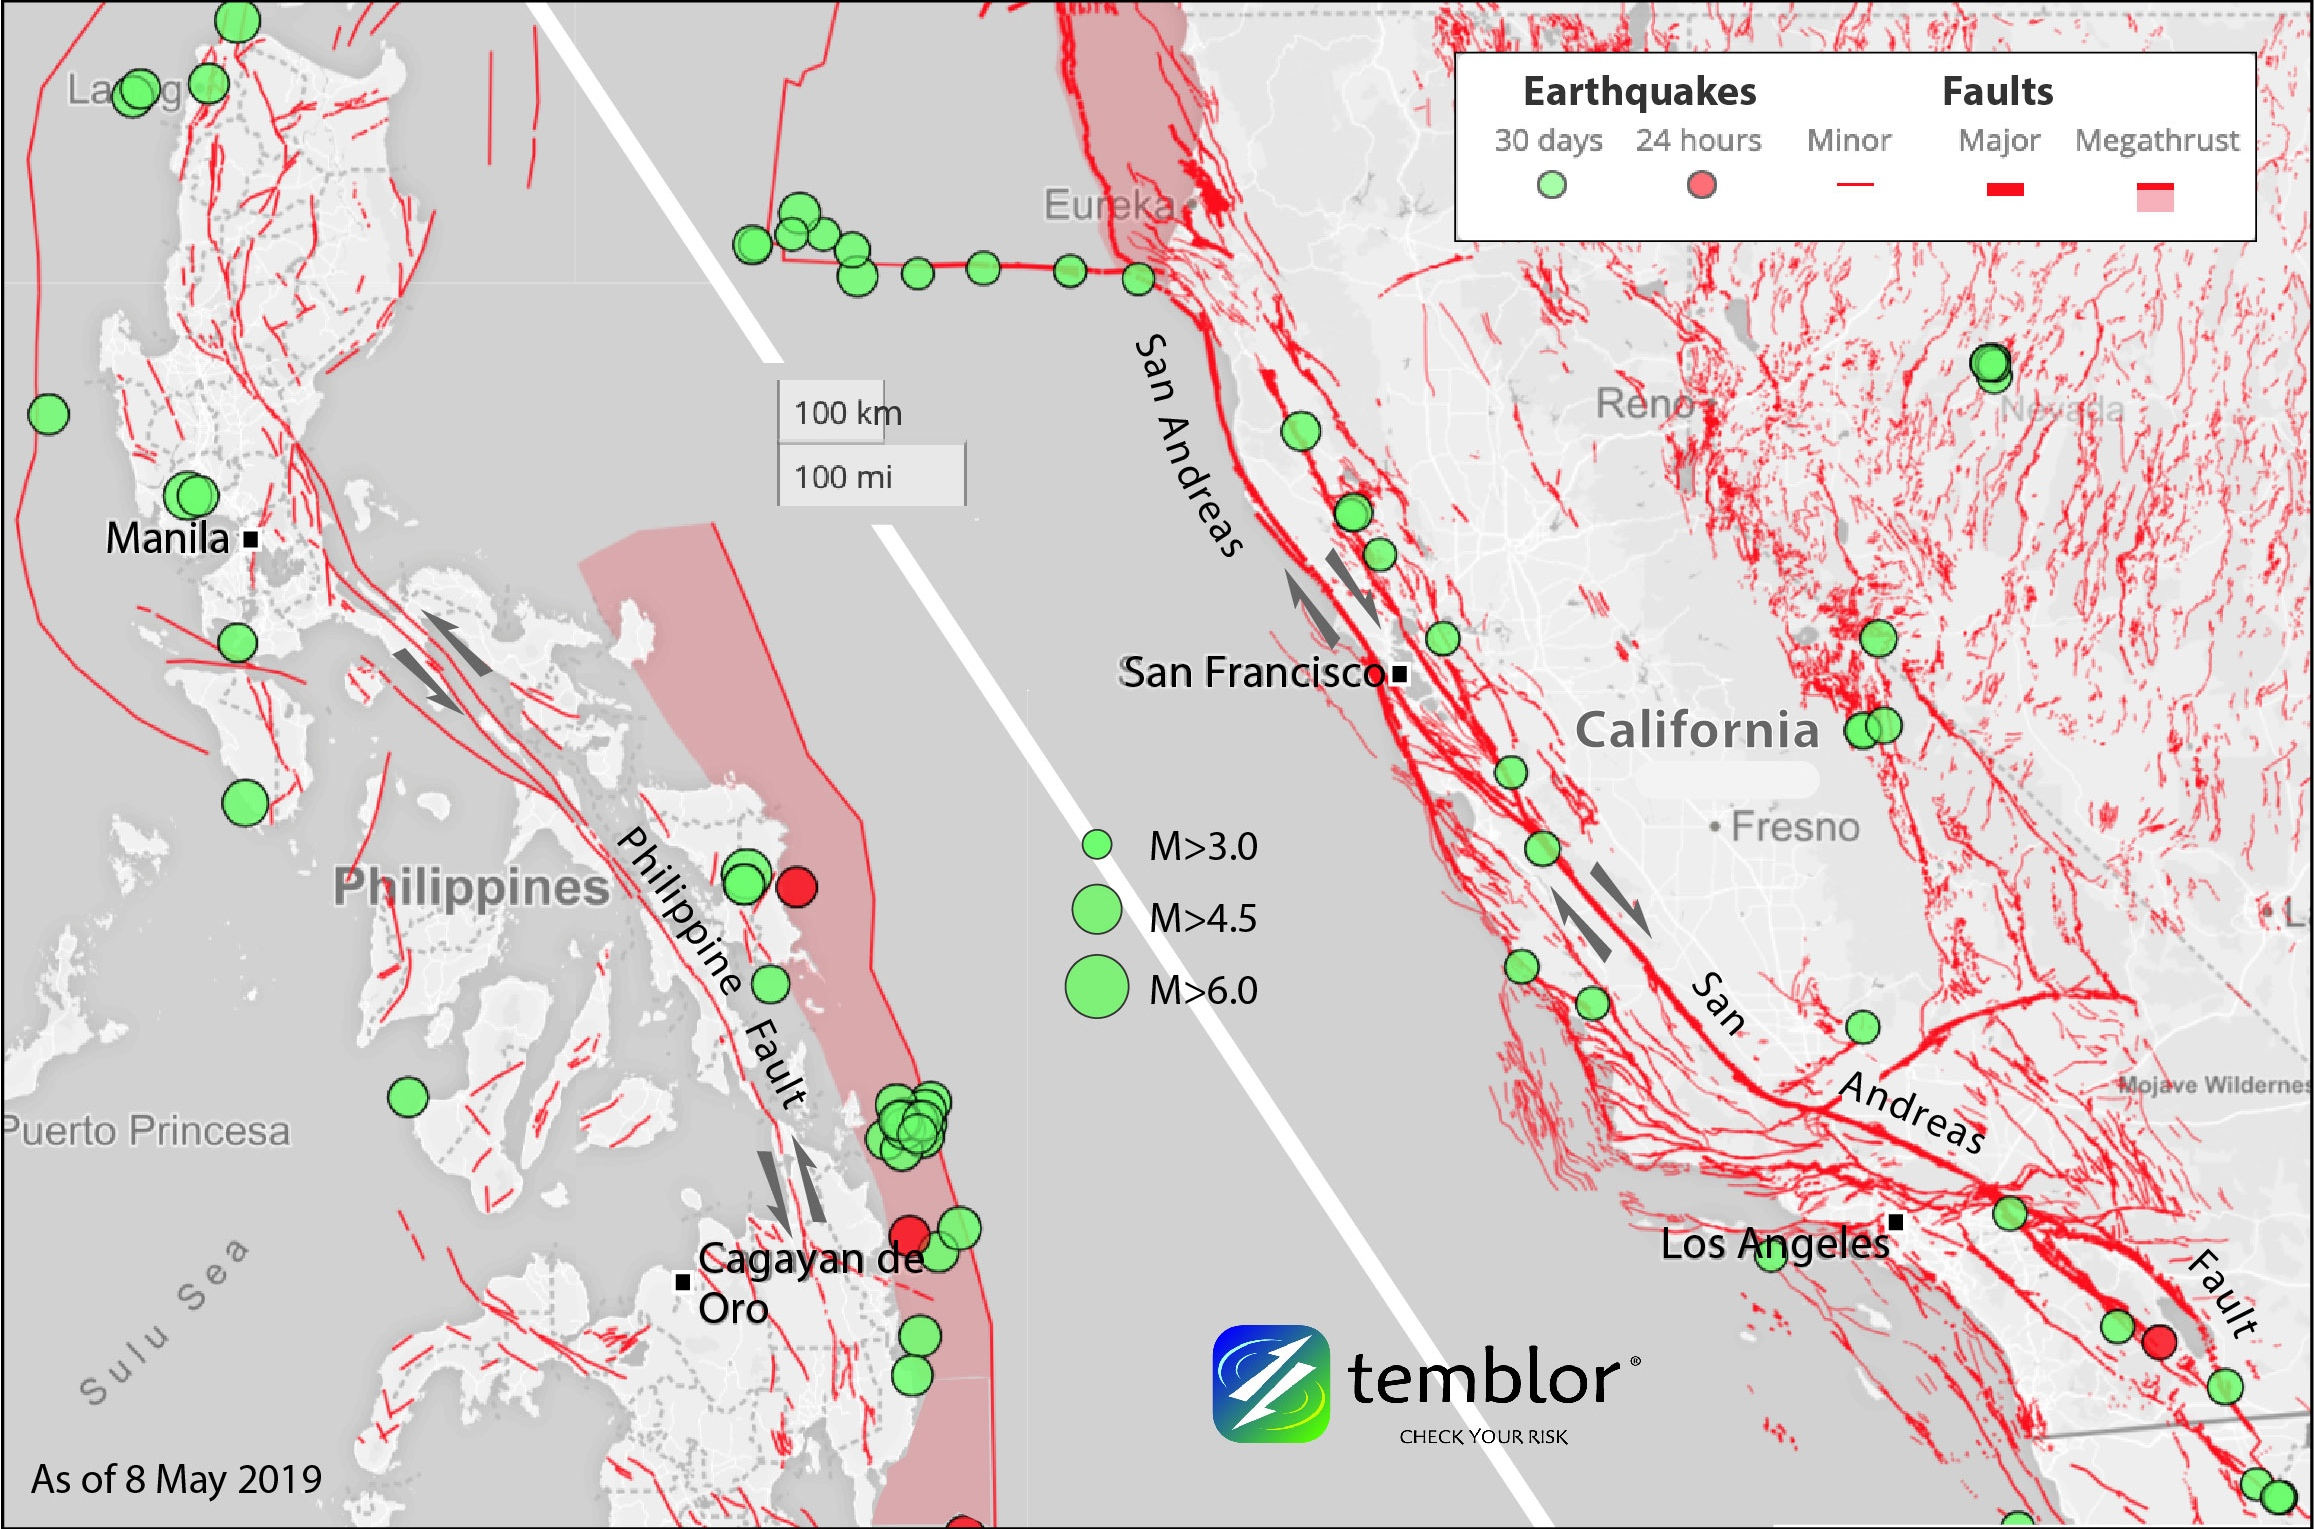 Two damaging tremors highlight the Philippines' coast-to ... on california earthquake index map, california earthquake shake map, california fire history map, california earthquake probability map, california earthquake hazard map, california earthquake frequency map, california wildfire history map, 2010 baja california earthquake map, kern county earthquake fault map, west coast earthquake map, california earthquake zones map, east coast hurricane history map, california earthquake damage map, monterey california earthquake map, california earthquake prediction map, california fault map, california earthquakes today map, loma prieta earthquake map,